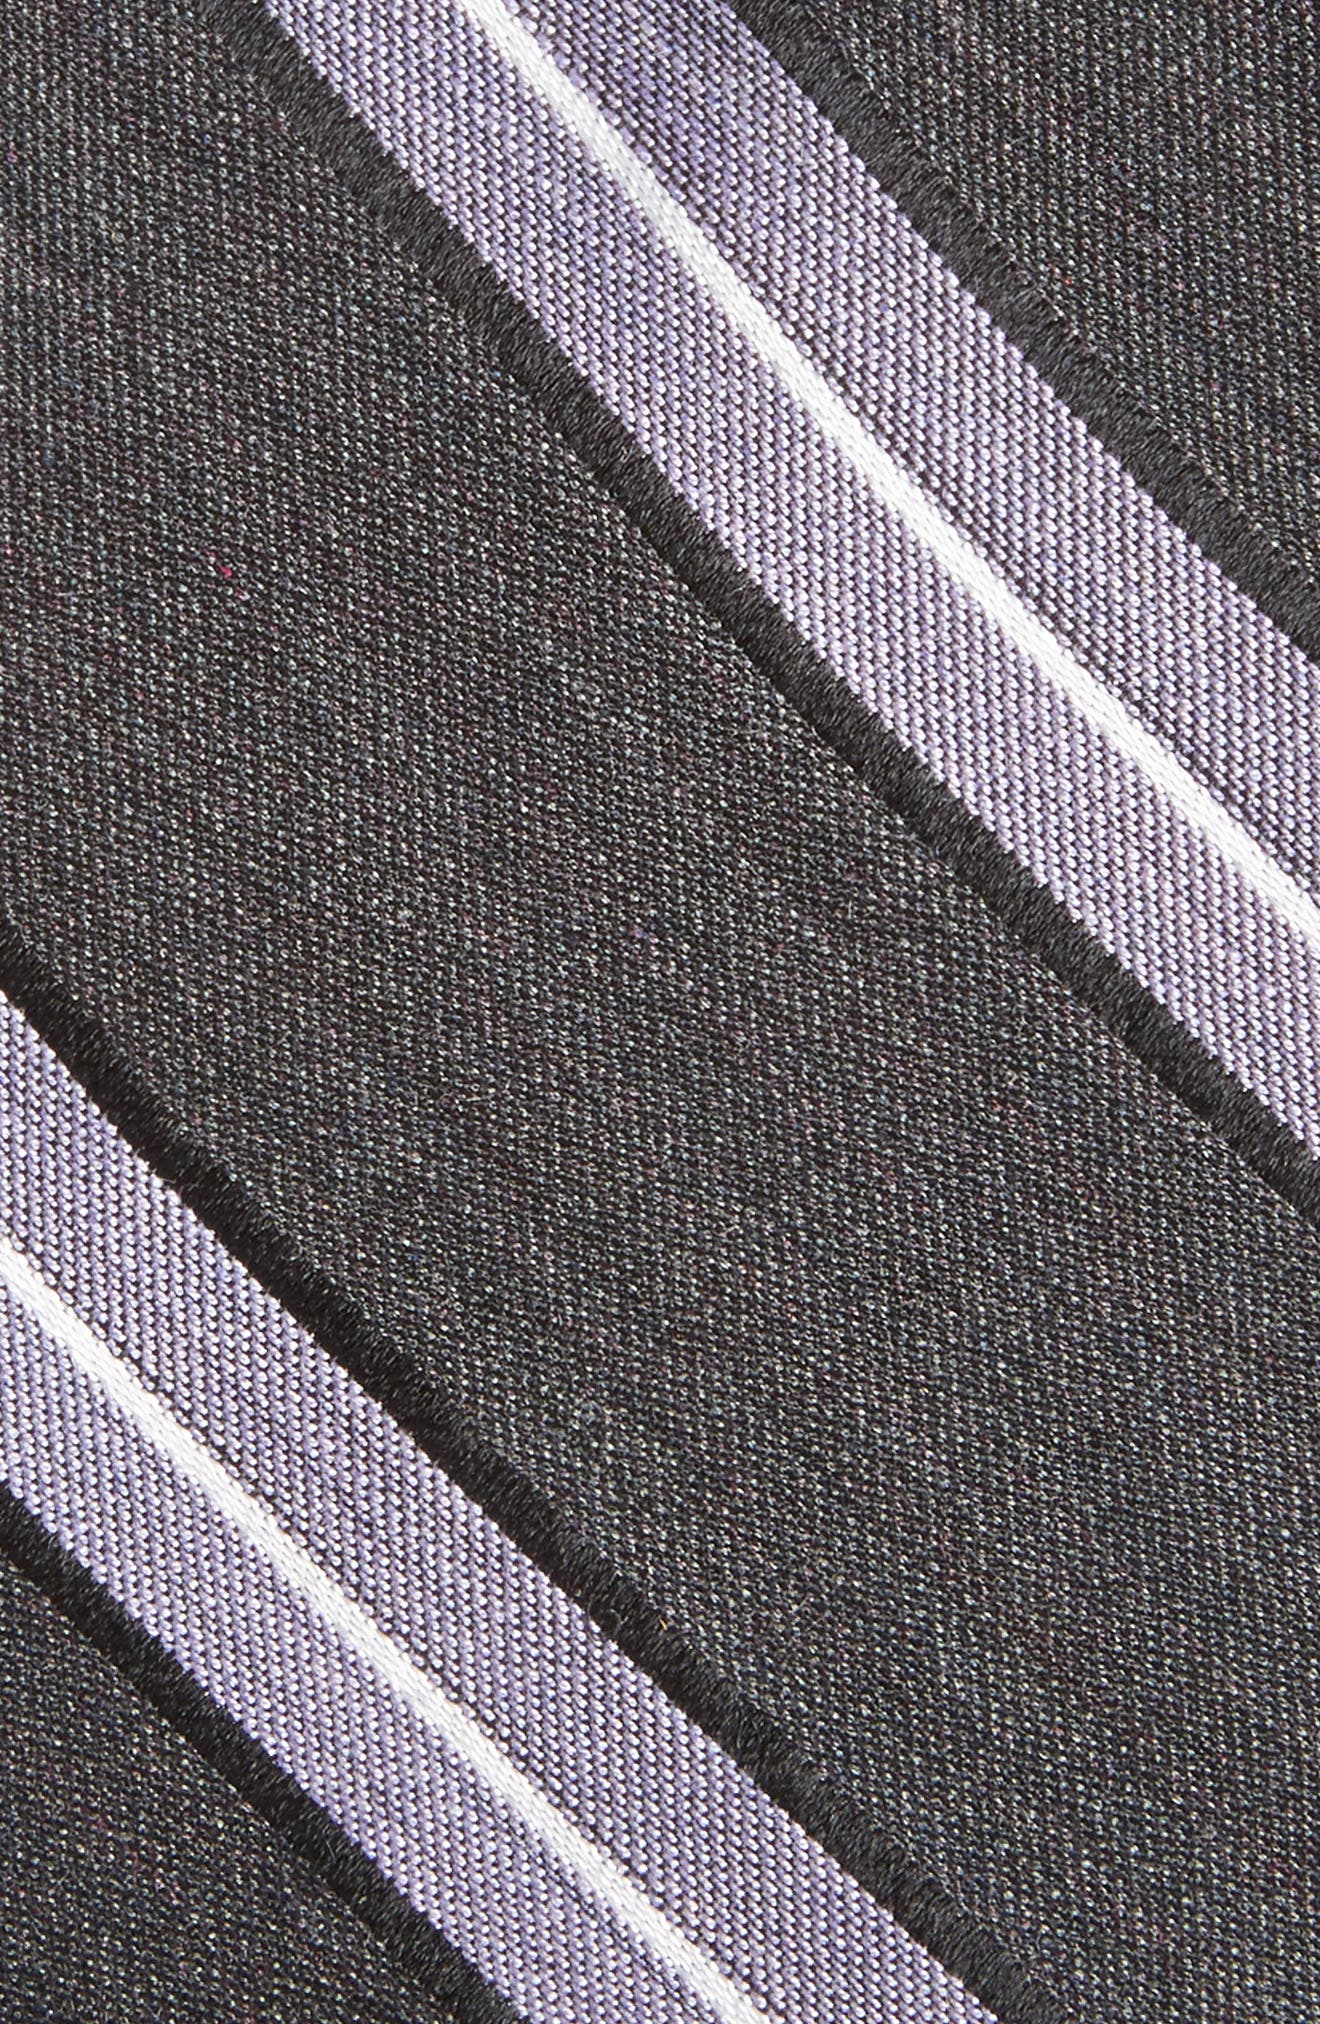 Peralba Stripe Silk Blend Tie,                             Alternate thumbnail 2, color,                             001